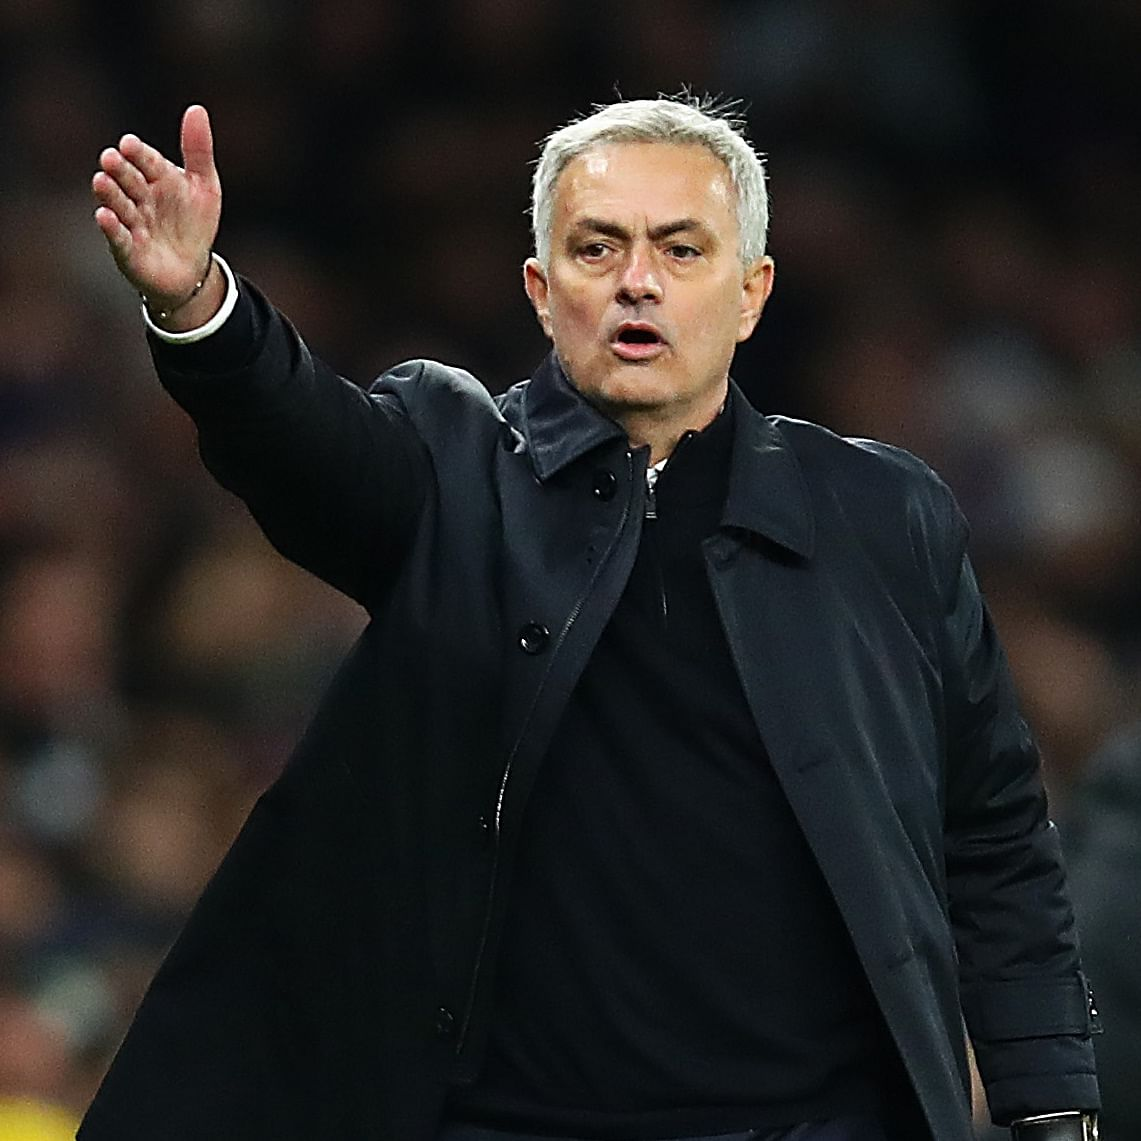 United is a closed chapter for me, says Jose Mourinho